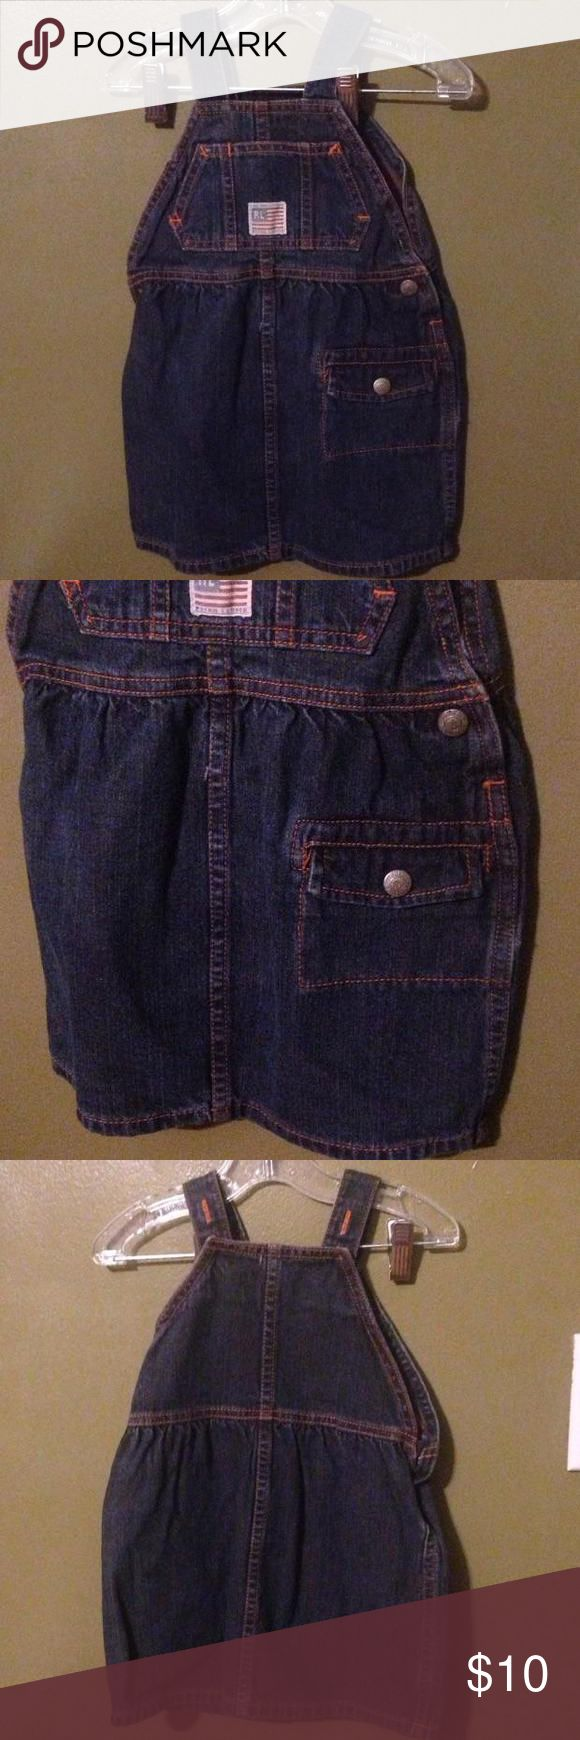 Polo Jeans Company Ralph Lauren overall set ~ size 6-12 months Cute blue jean overalls dress size 6 through 12 months. lined with orange stitching with a small decorative pocket on the front to hold the little ones treasures. The straps are adjustable as seen in the last picture and will help you get lots of wear. Ralph Lauren Dresses